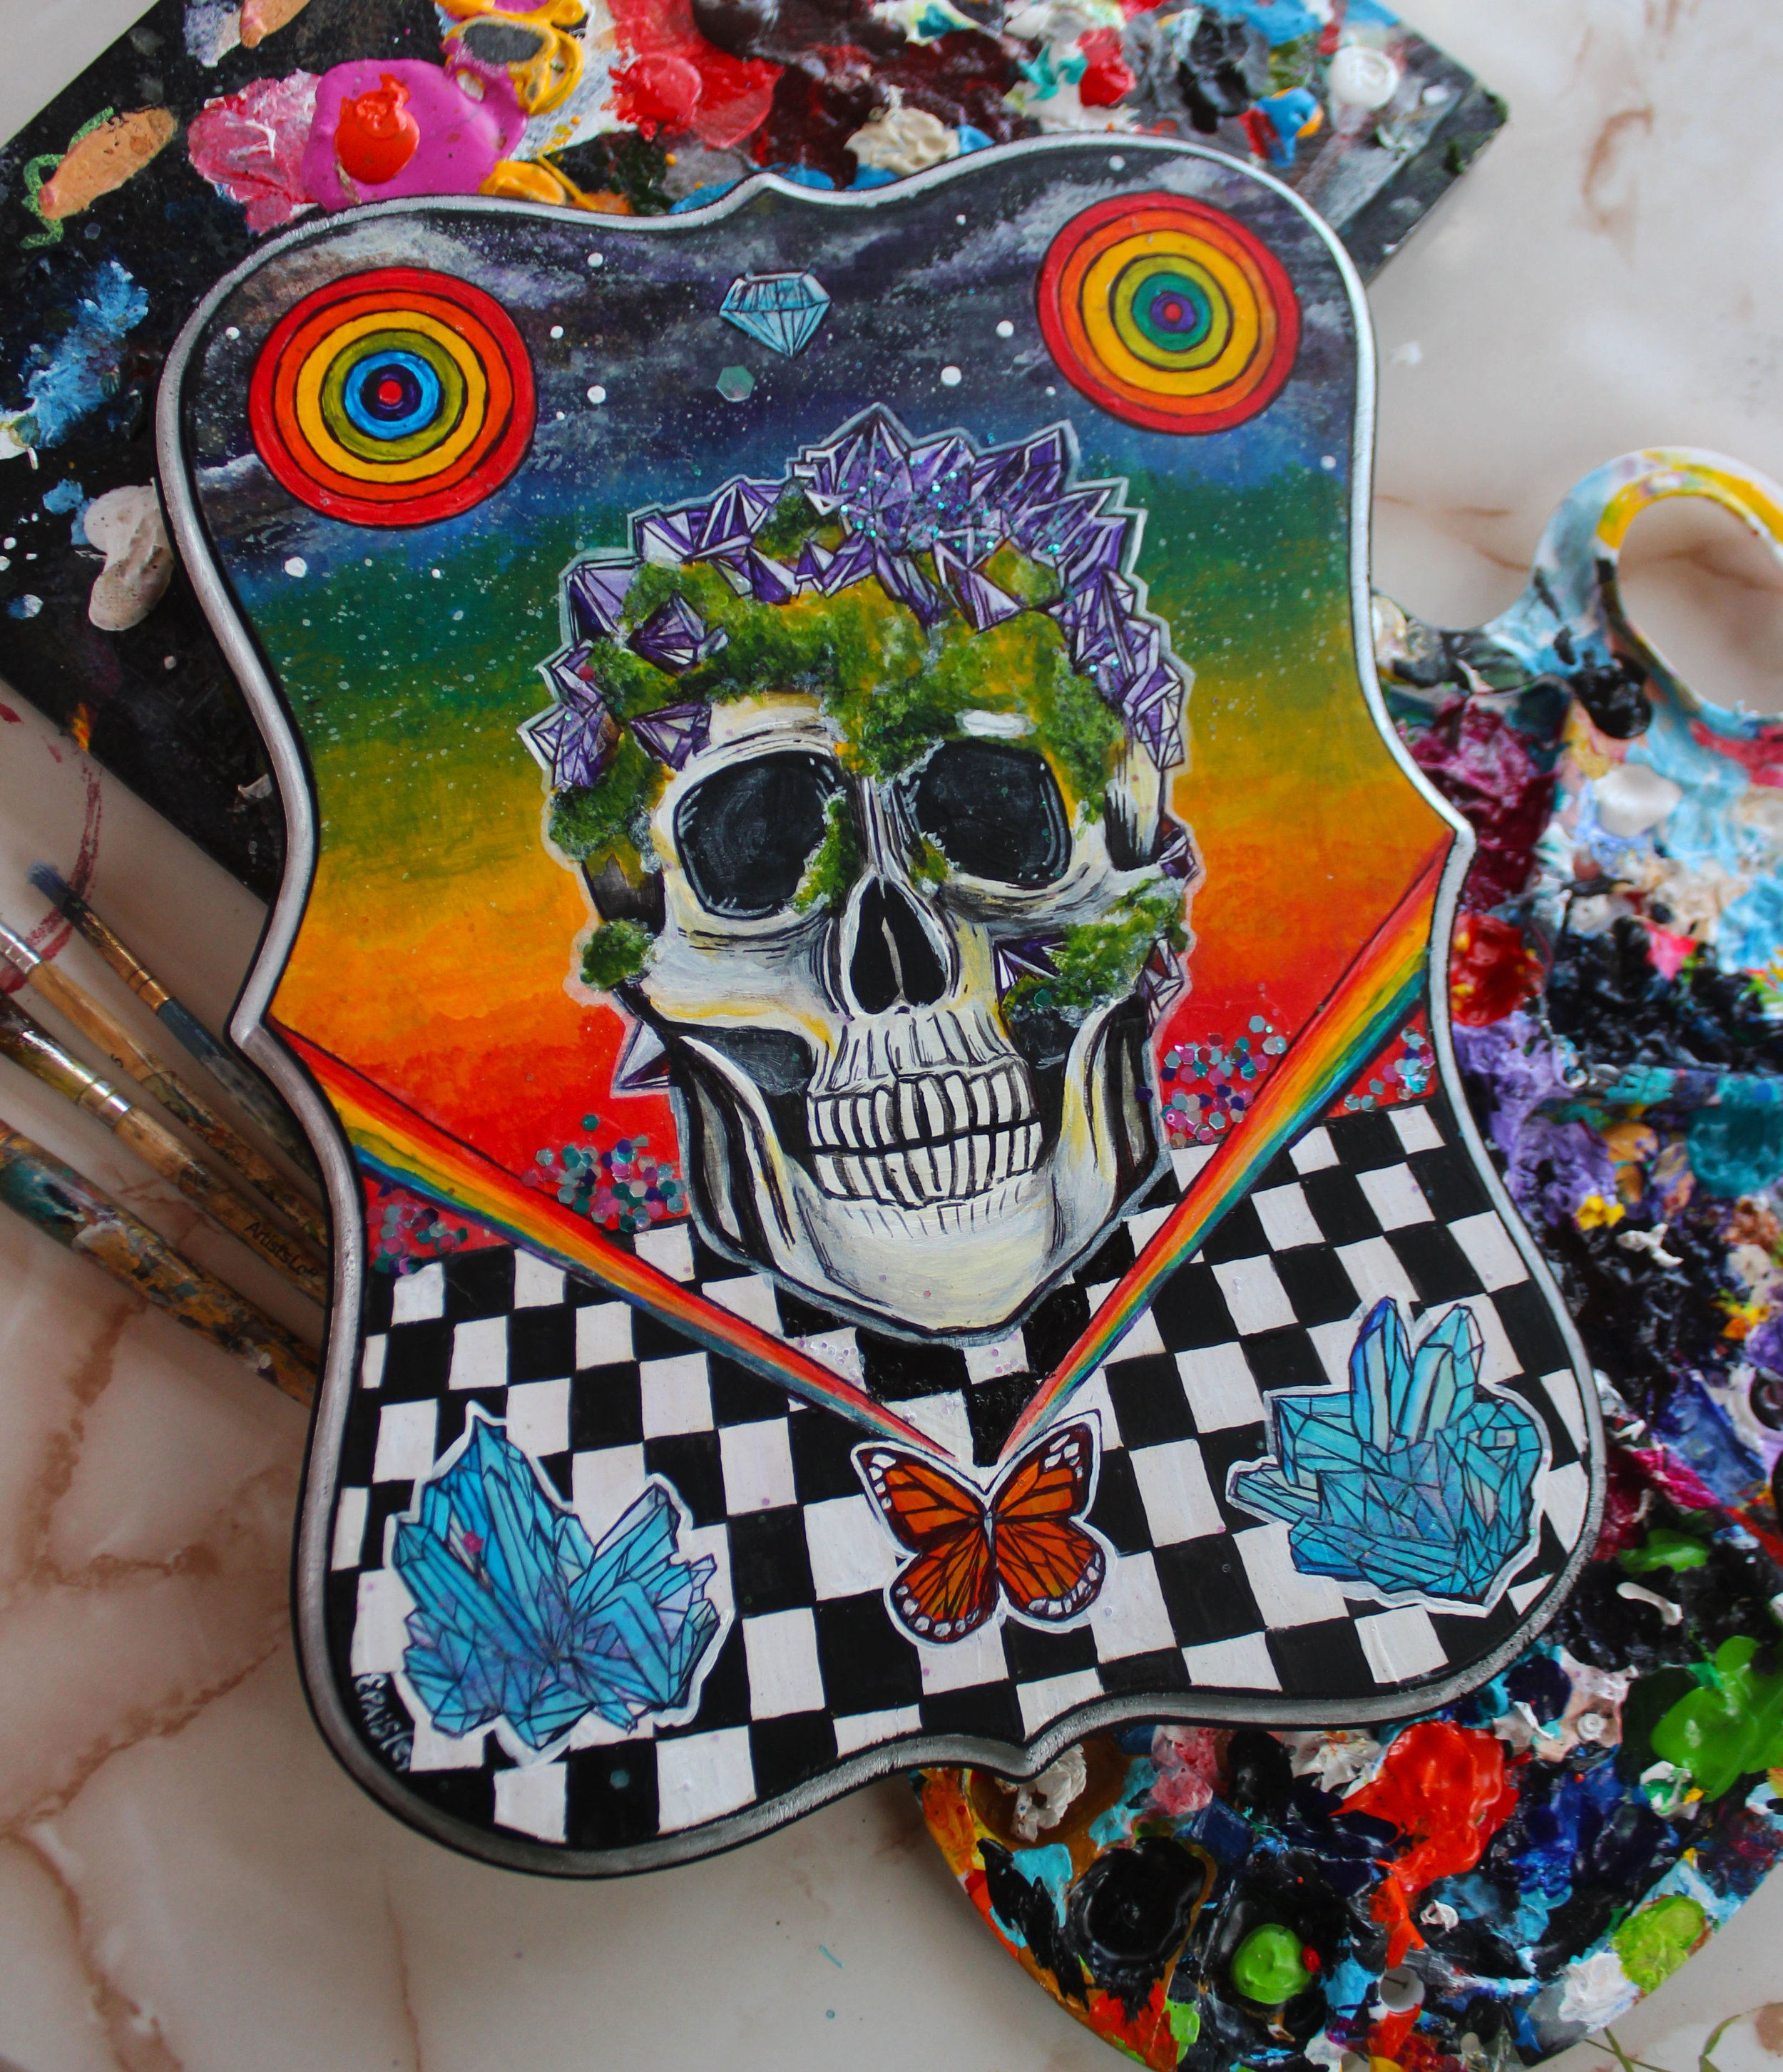 Rainbow Crystal Skull 2017 2/2